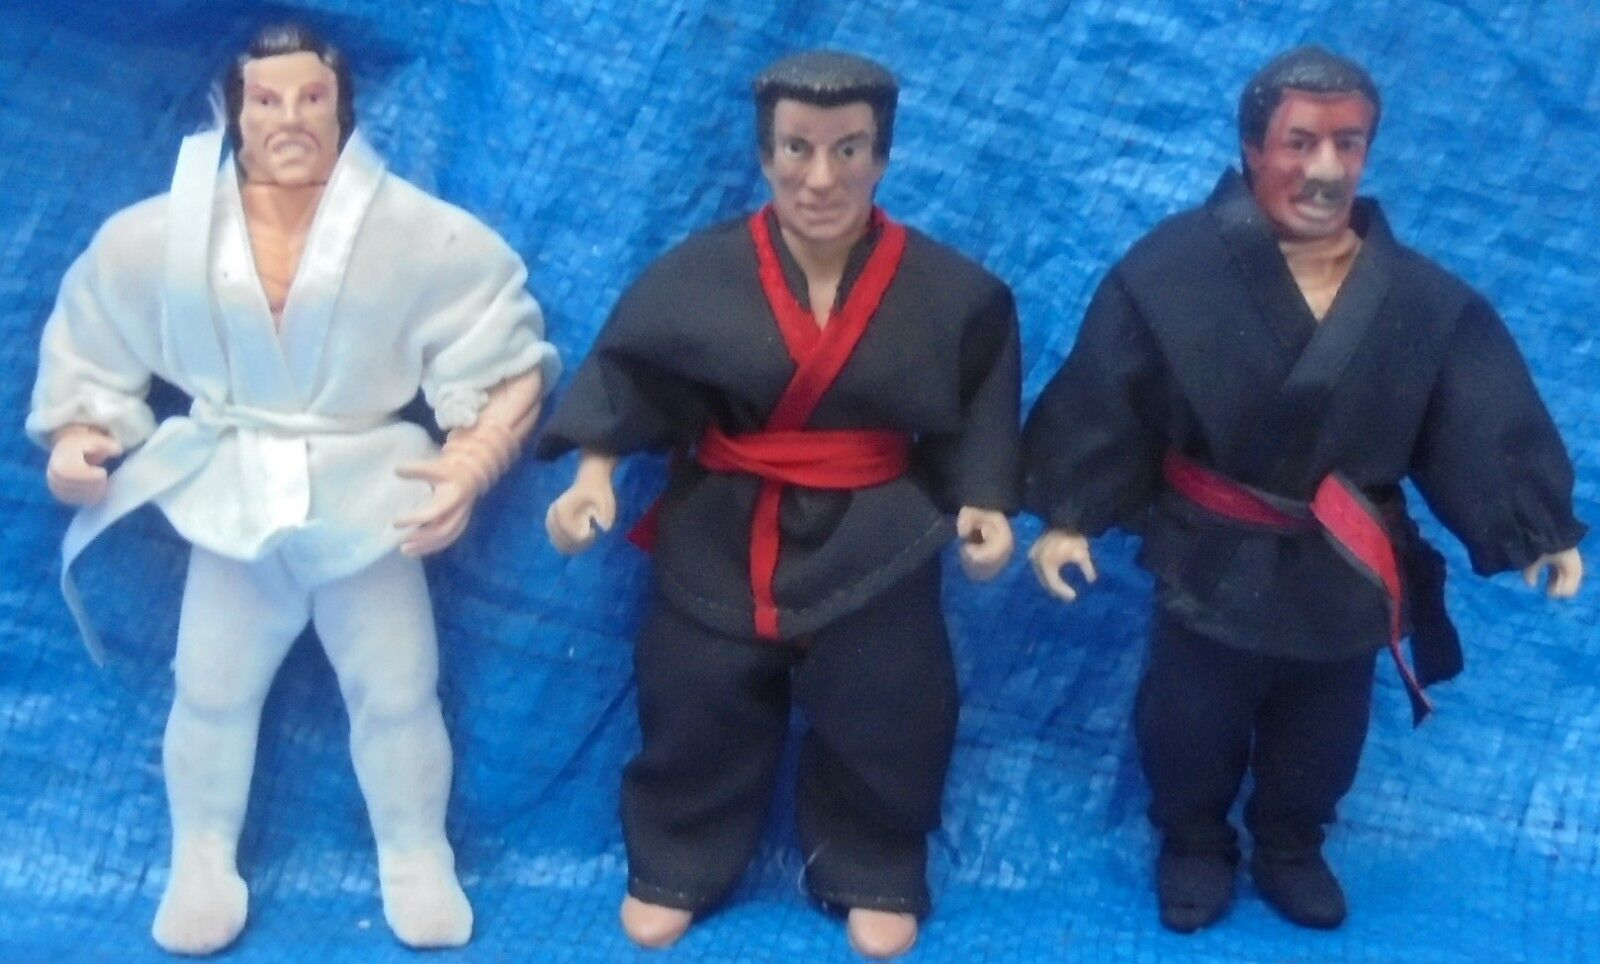 Ninja Master Master Martial Arts Action Figure With Gi Lot Vintage 1980's VTG